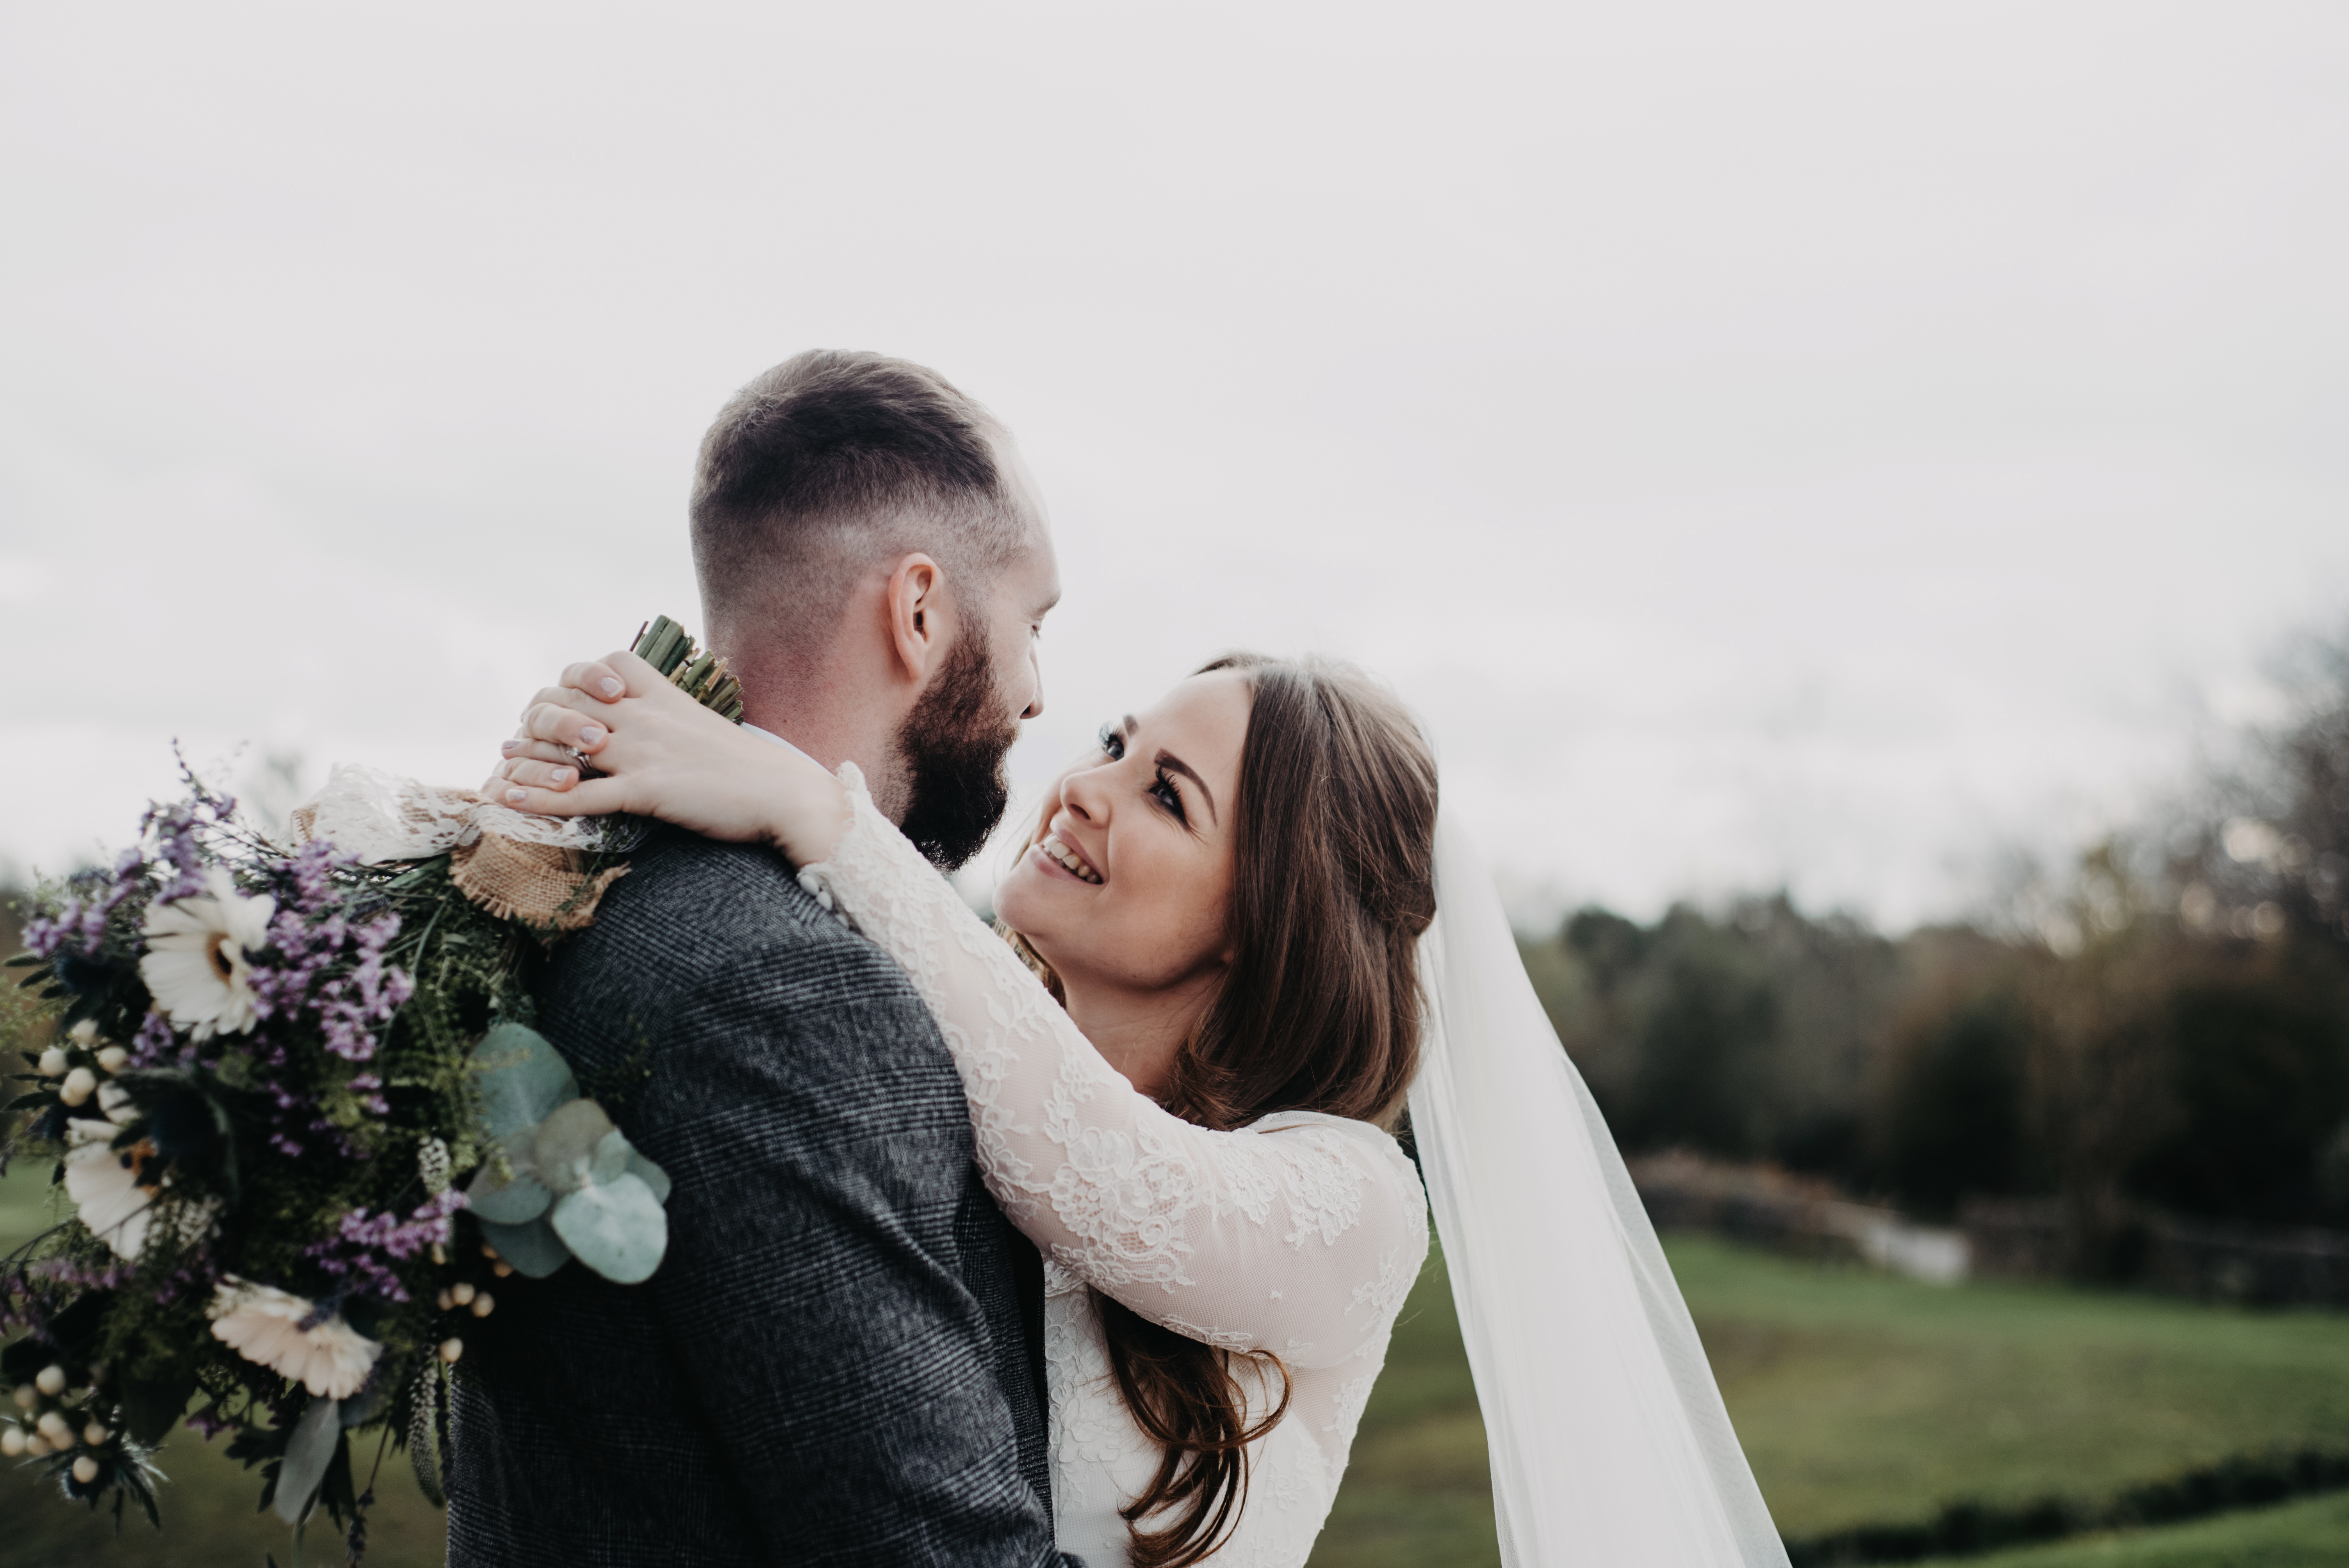 A bride and groom looks into eachothers eyes and smiles